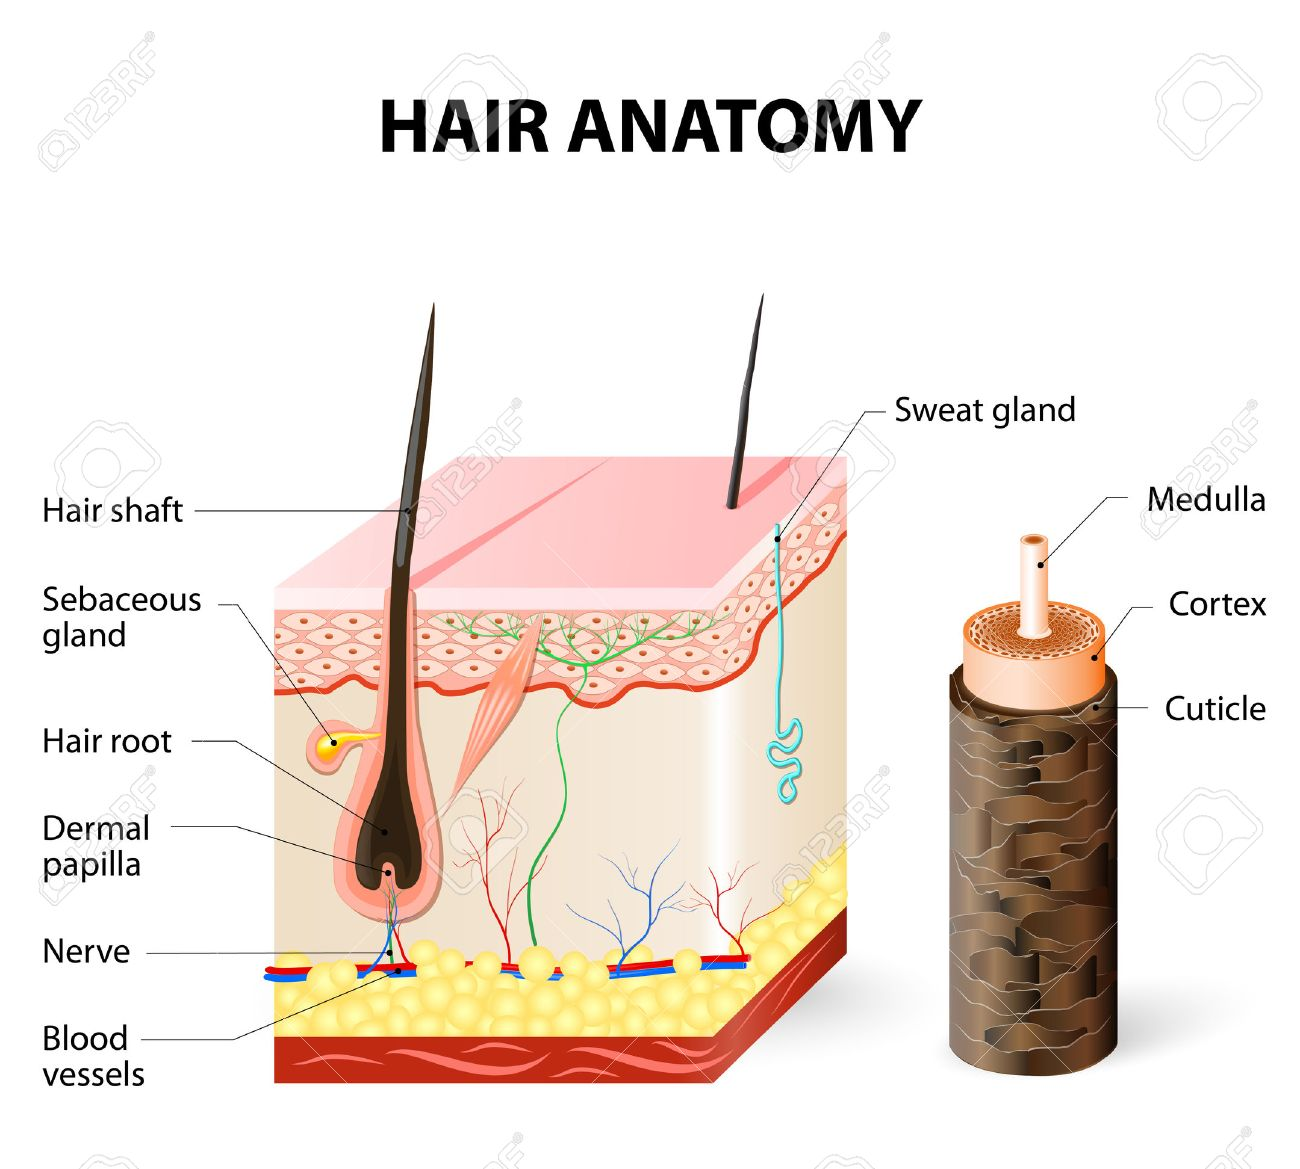 Hair Anatomy. The Hair Shaft Grows From The Hair Follicle Consisting ...